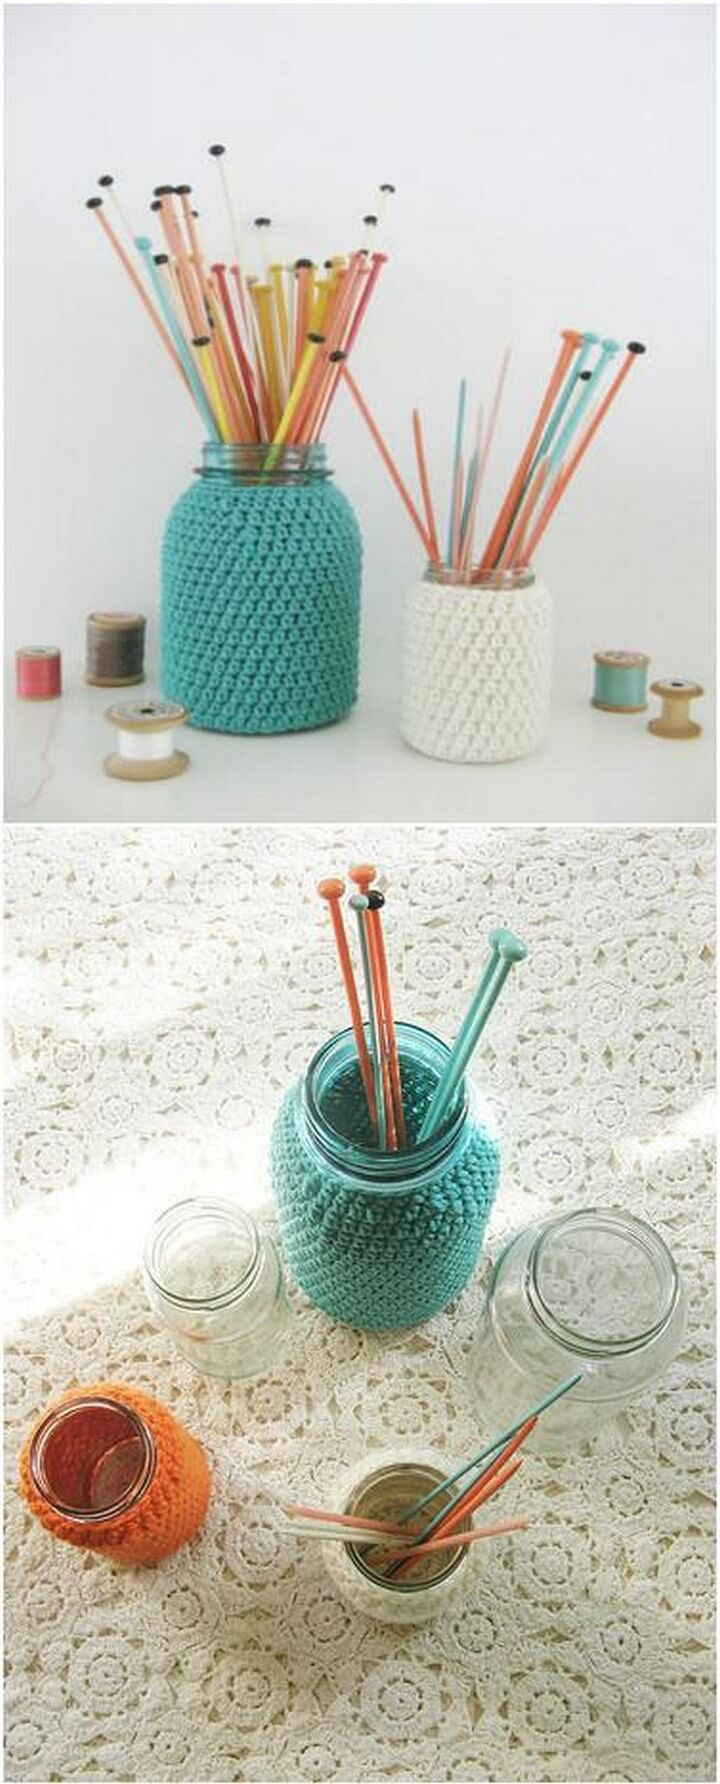 DIY Knitted Mason Jar Knitting Needle Holders